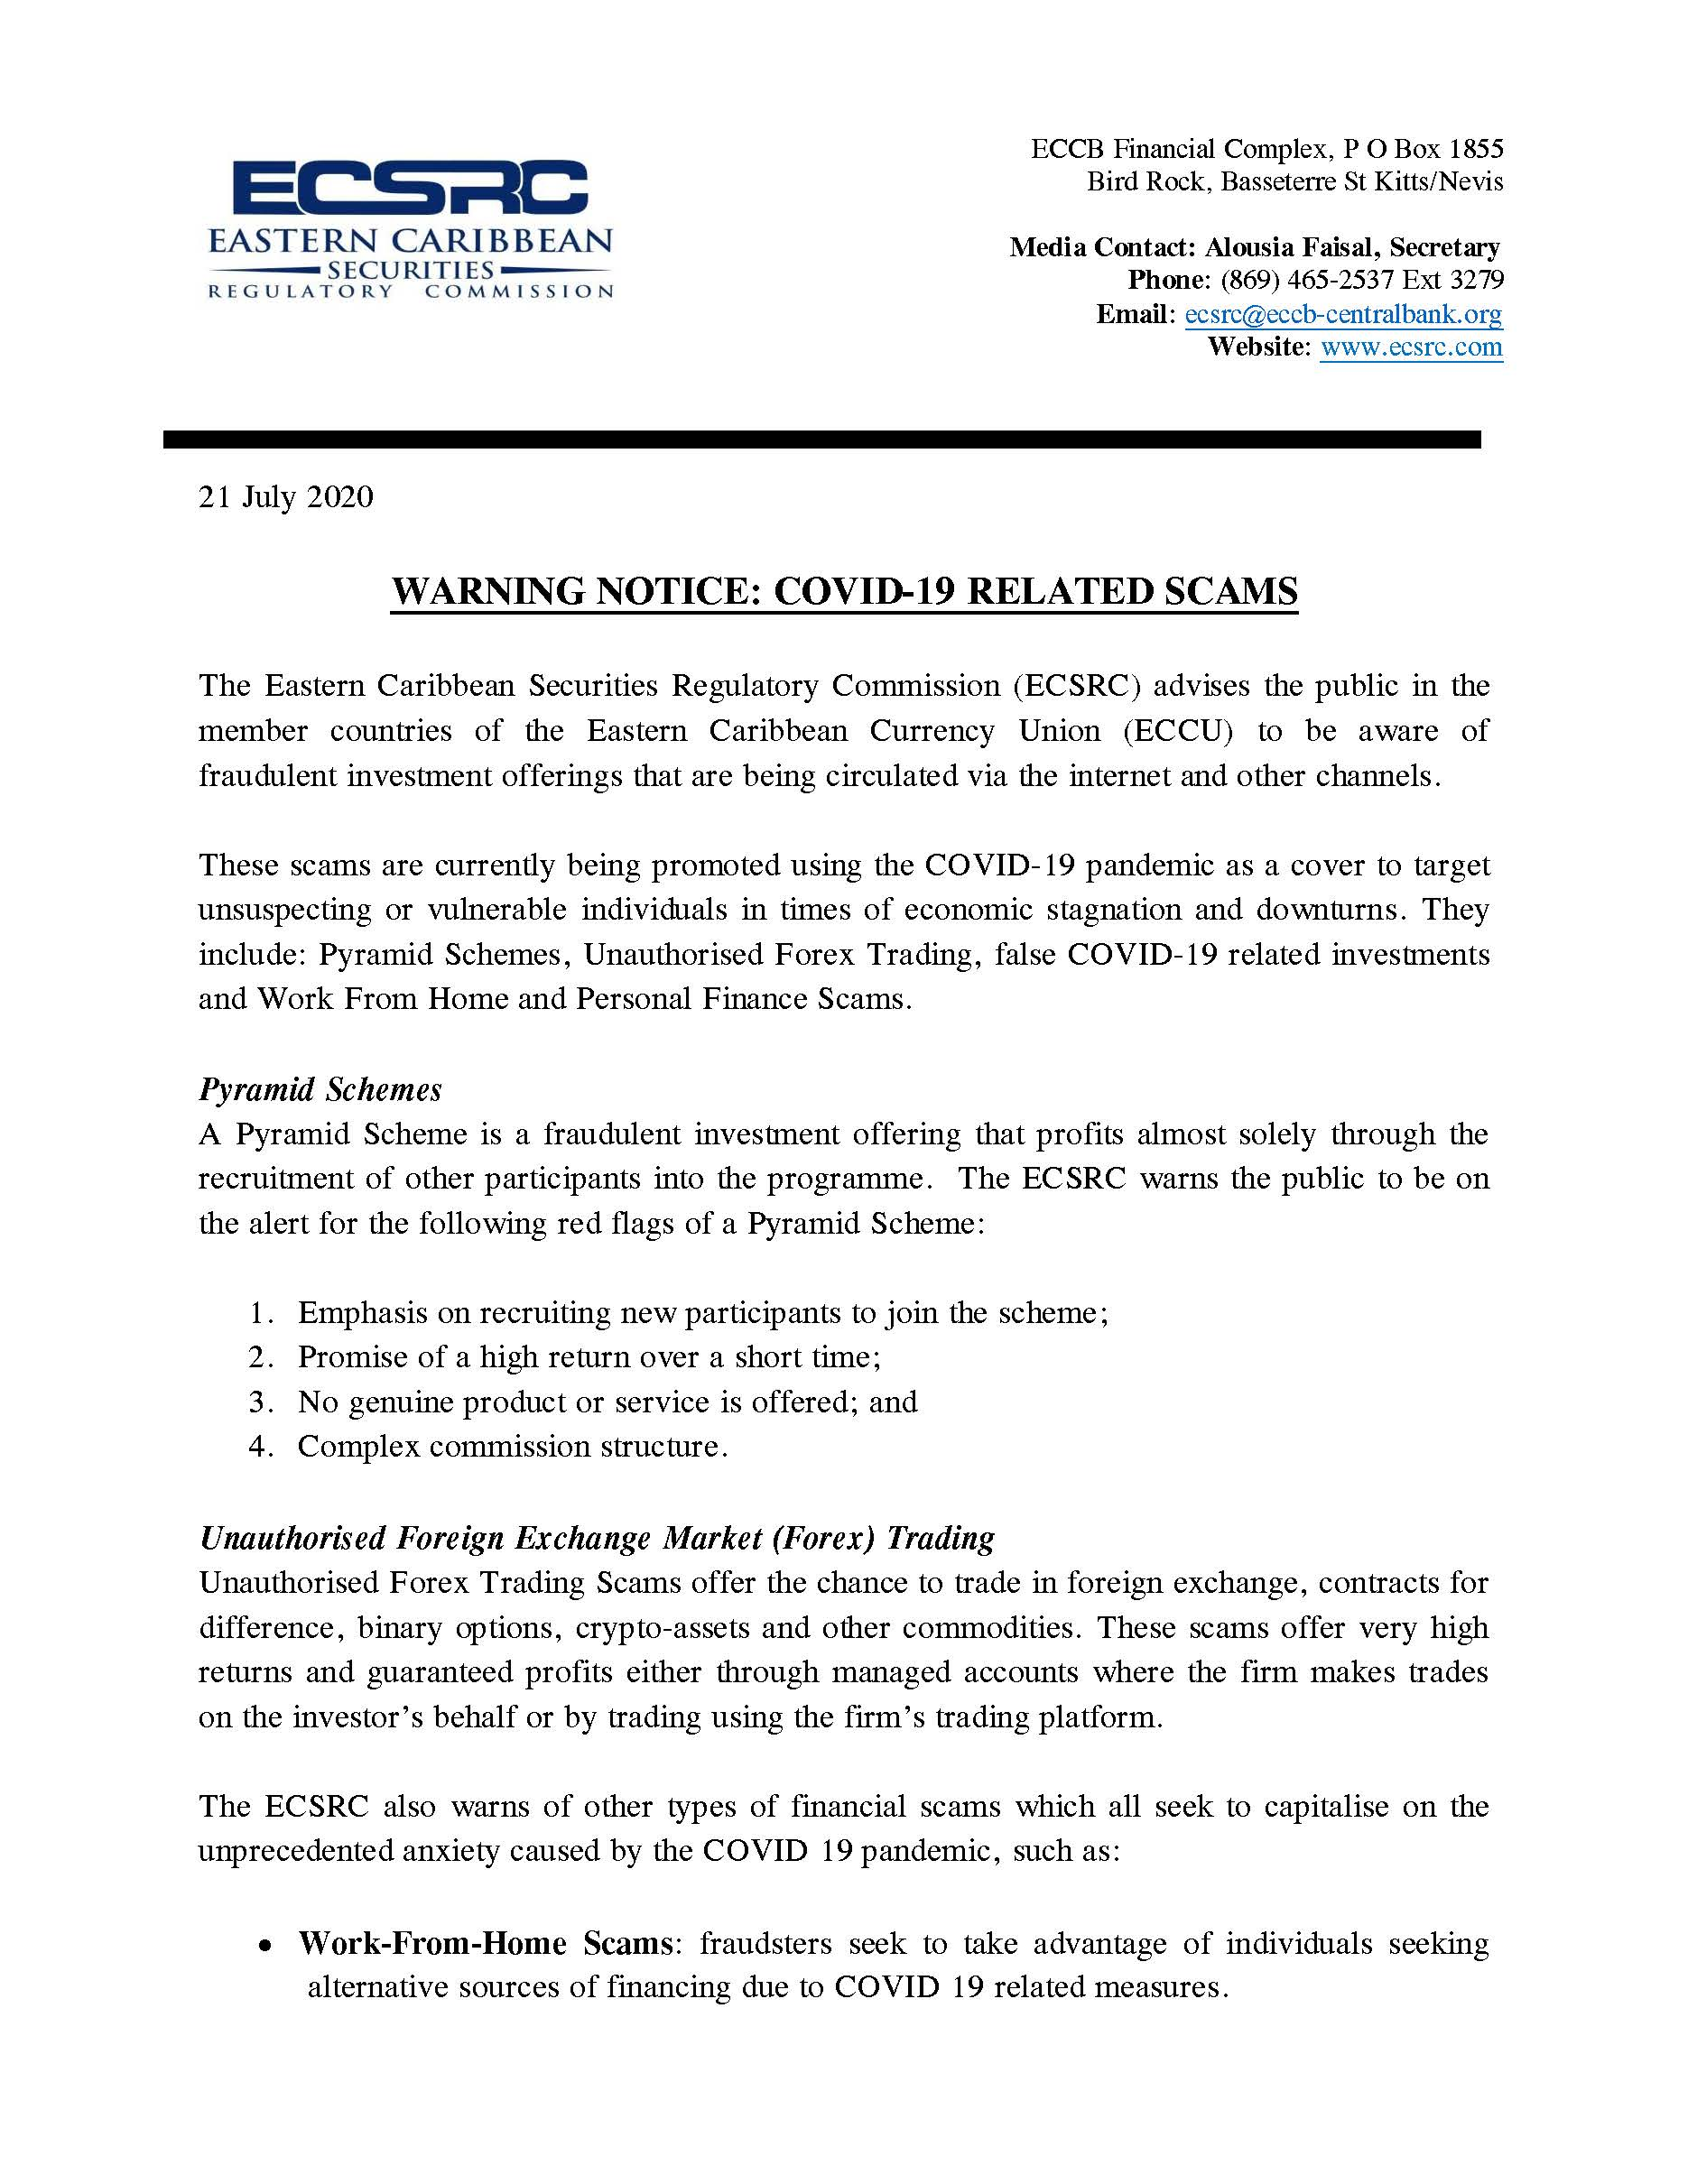 ECSRC – WARNING NOTICE: COVID-19 RELATED SCAMS